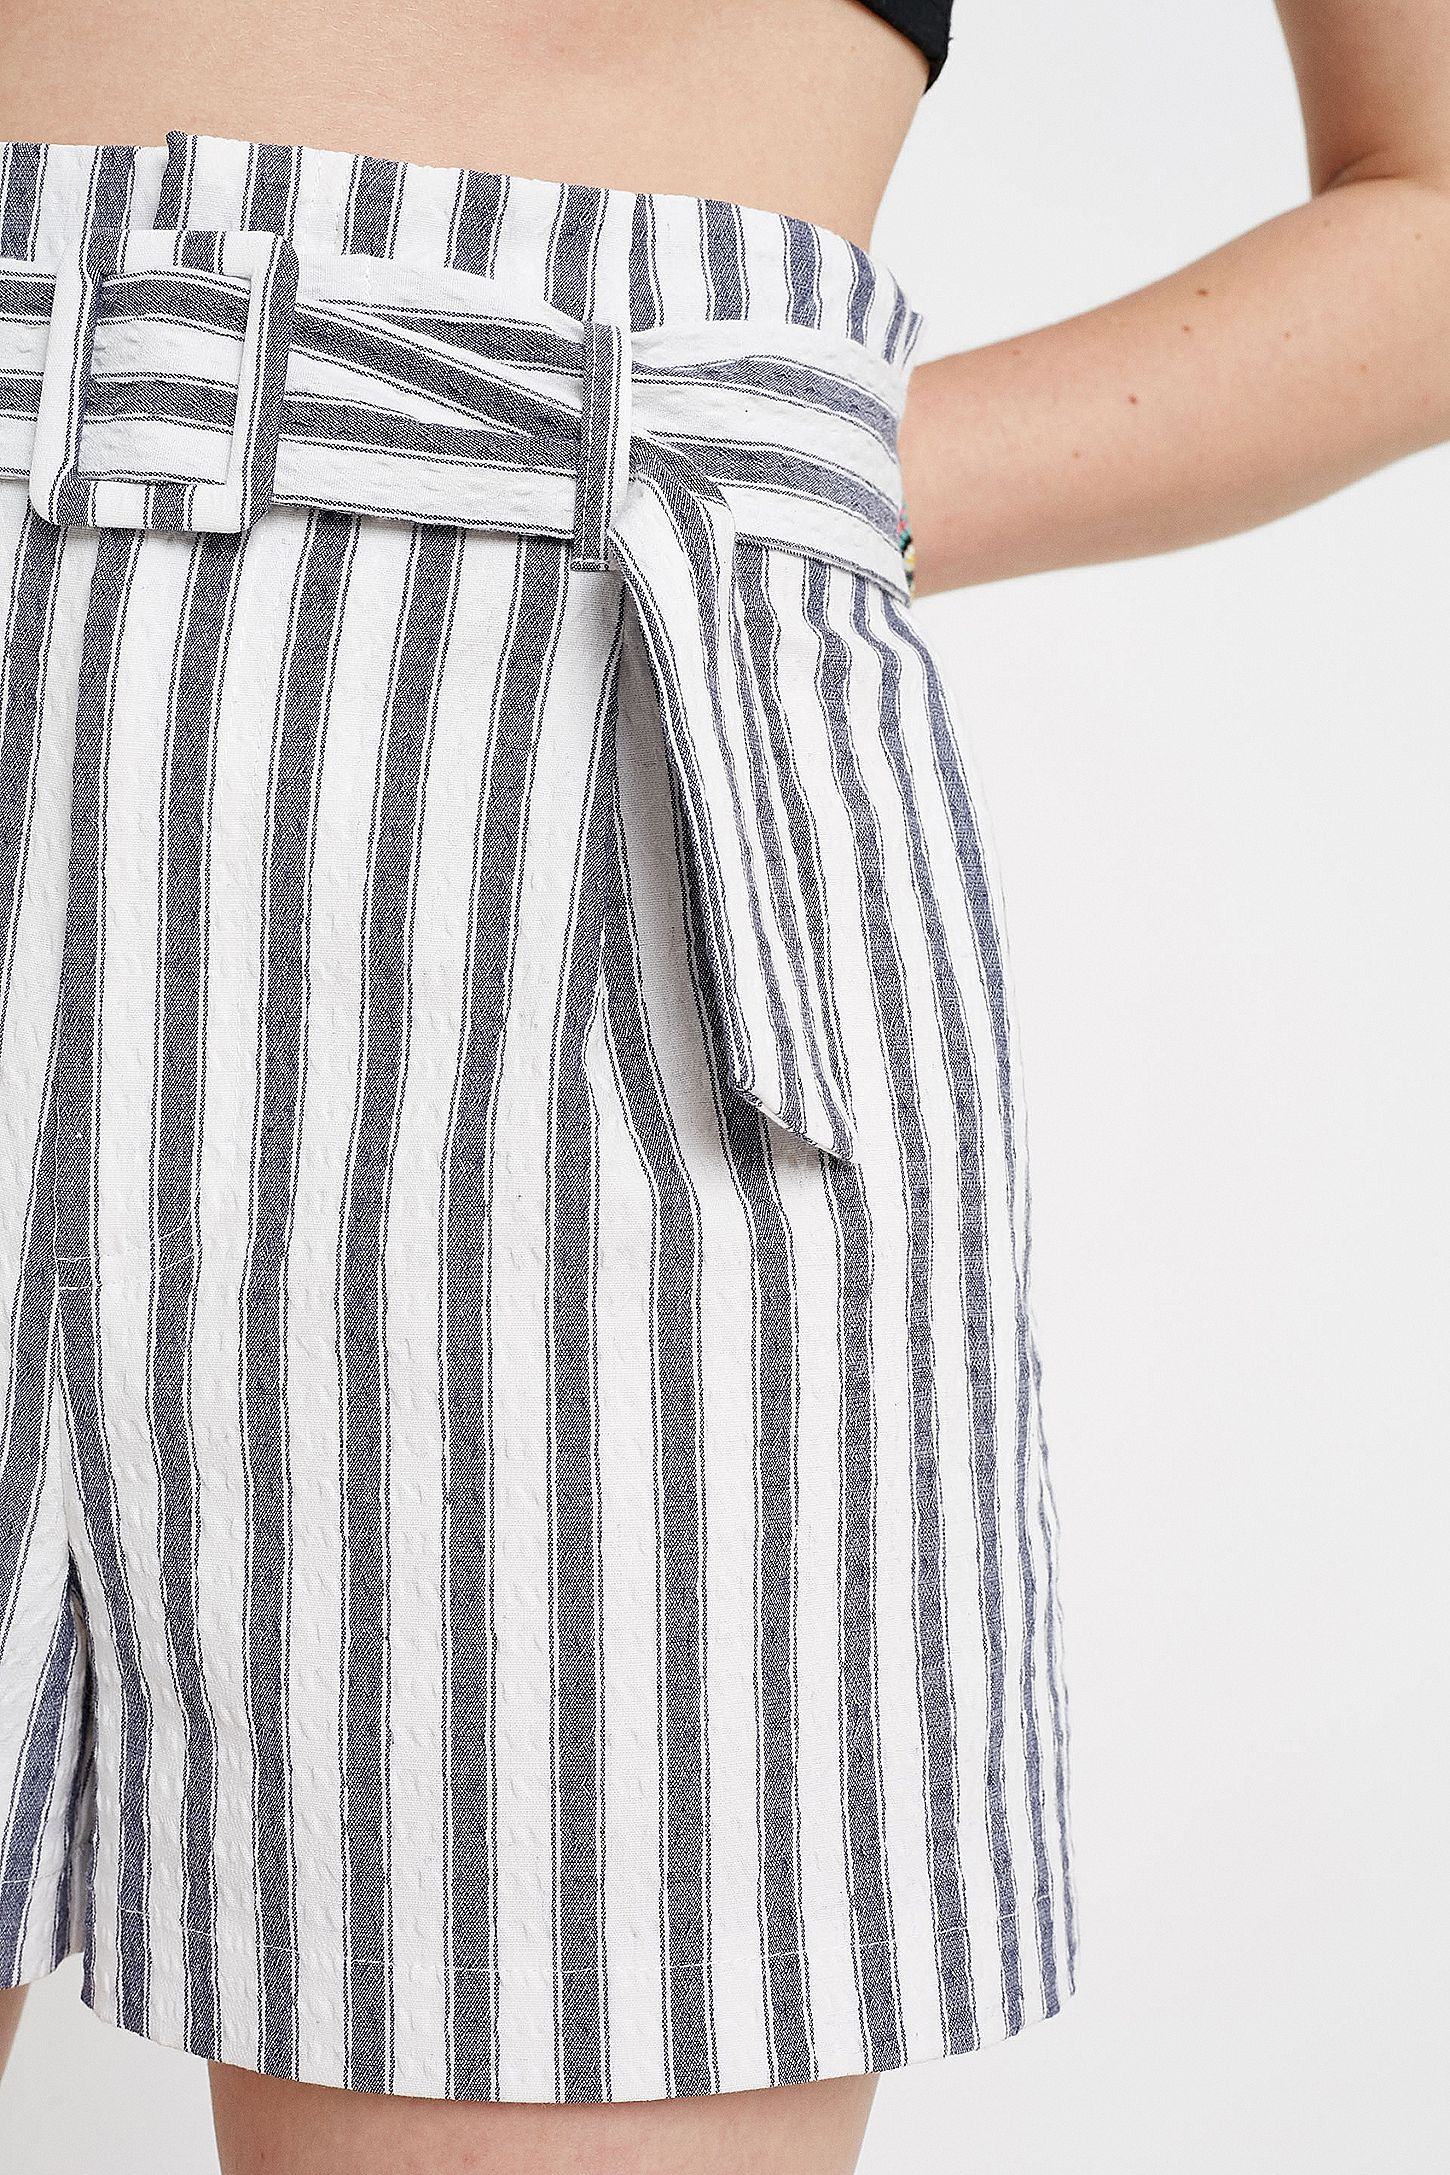 "6ea699a7ce743d Slide View: 4: Urban Outfitters – Gestreifte High-Waist-Shorts ""George"